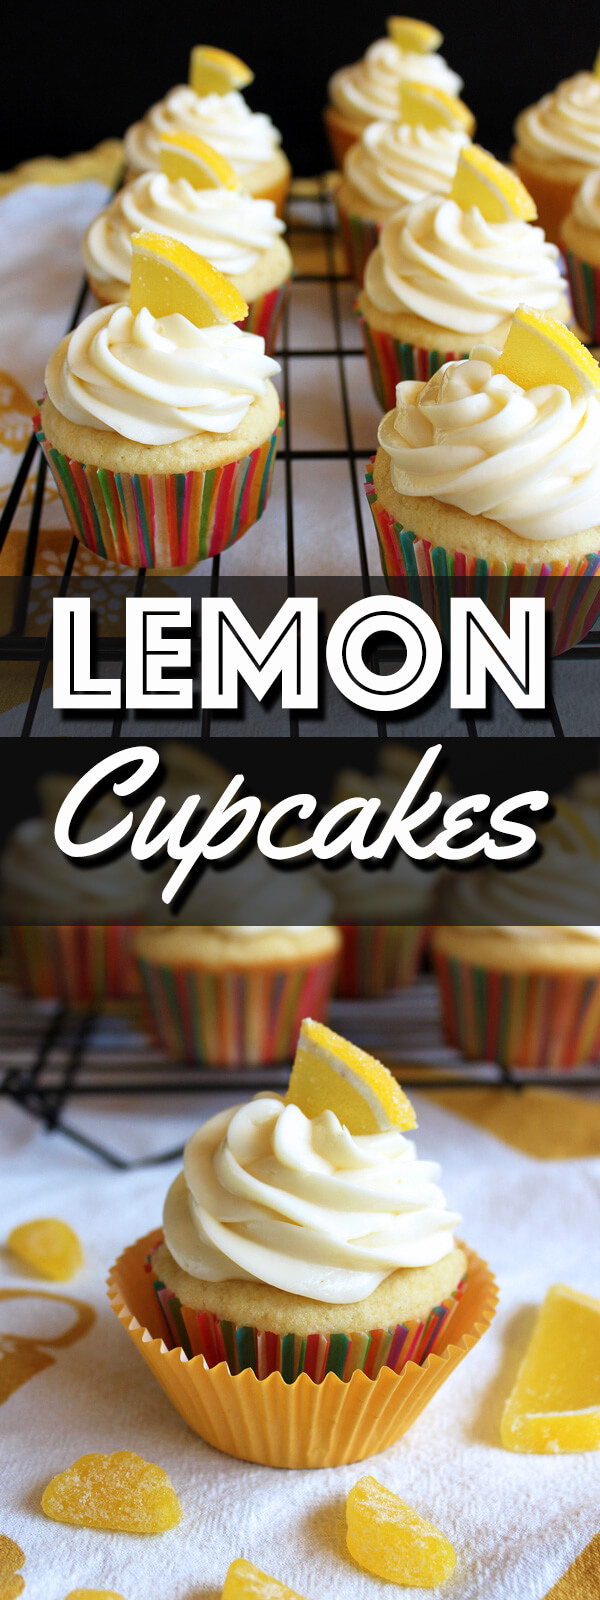 Lemon cupcakes are so refreshing and perfect for anytime of the year. These cupcakes are topped with a generous amount of tangy lemon cream cheese frosting and a piece of lemon candy. | wildwildwhisk.com